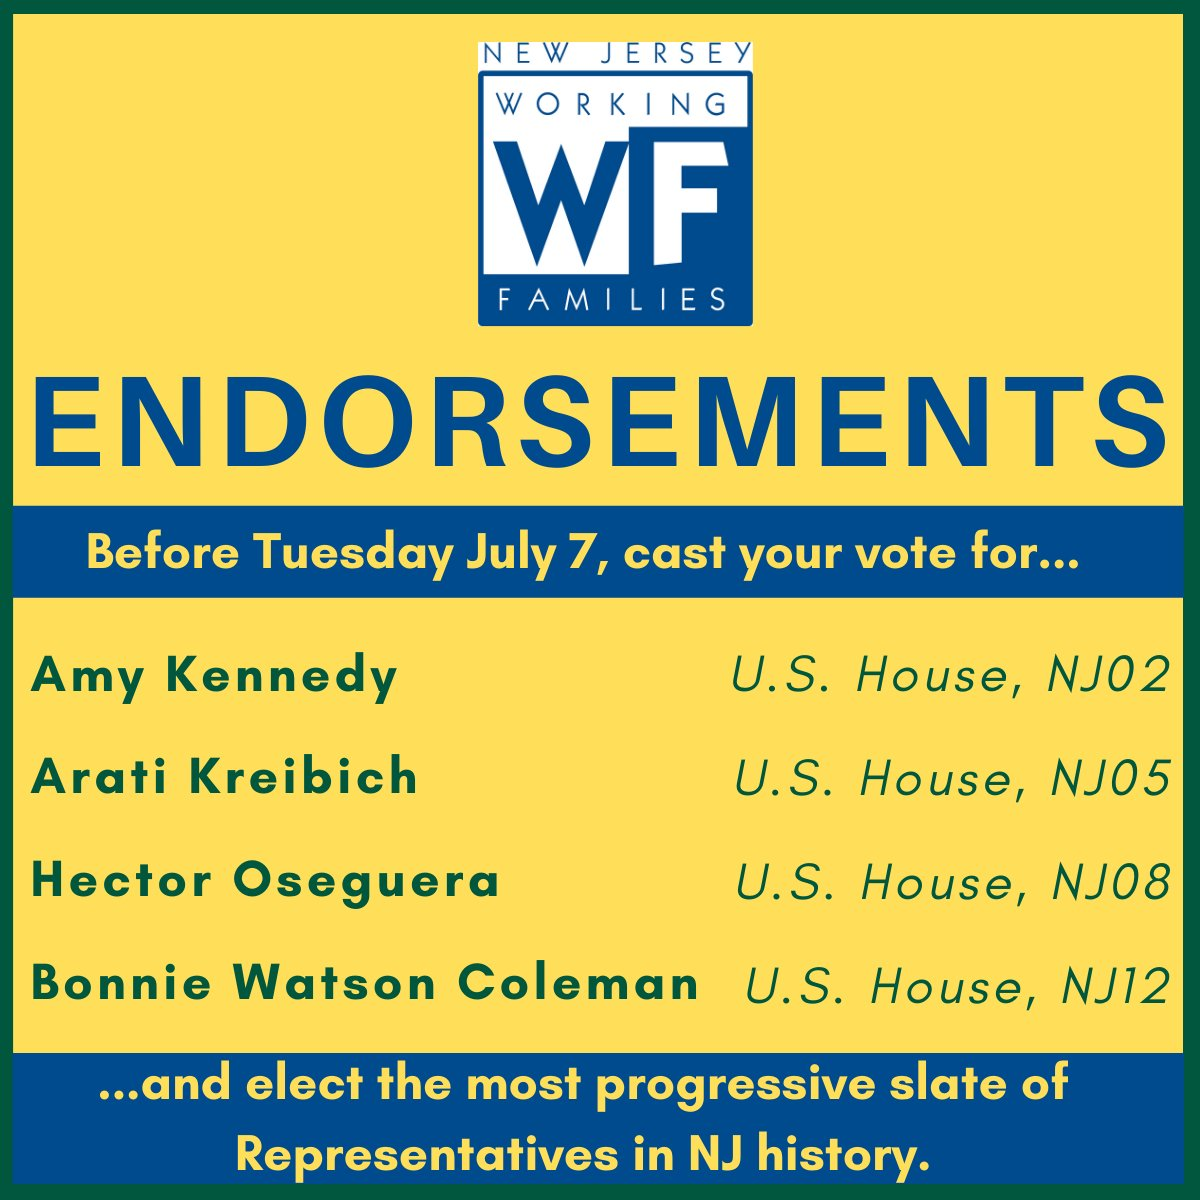 Be sure to vote for these progressive candidates and mail in your ballots before Tuesday! https://t.co/gKkB7XF49E